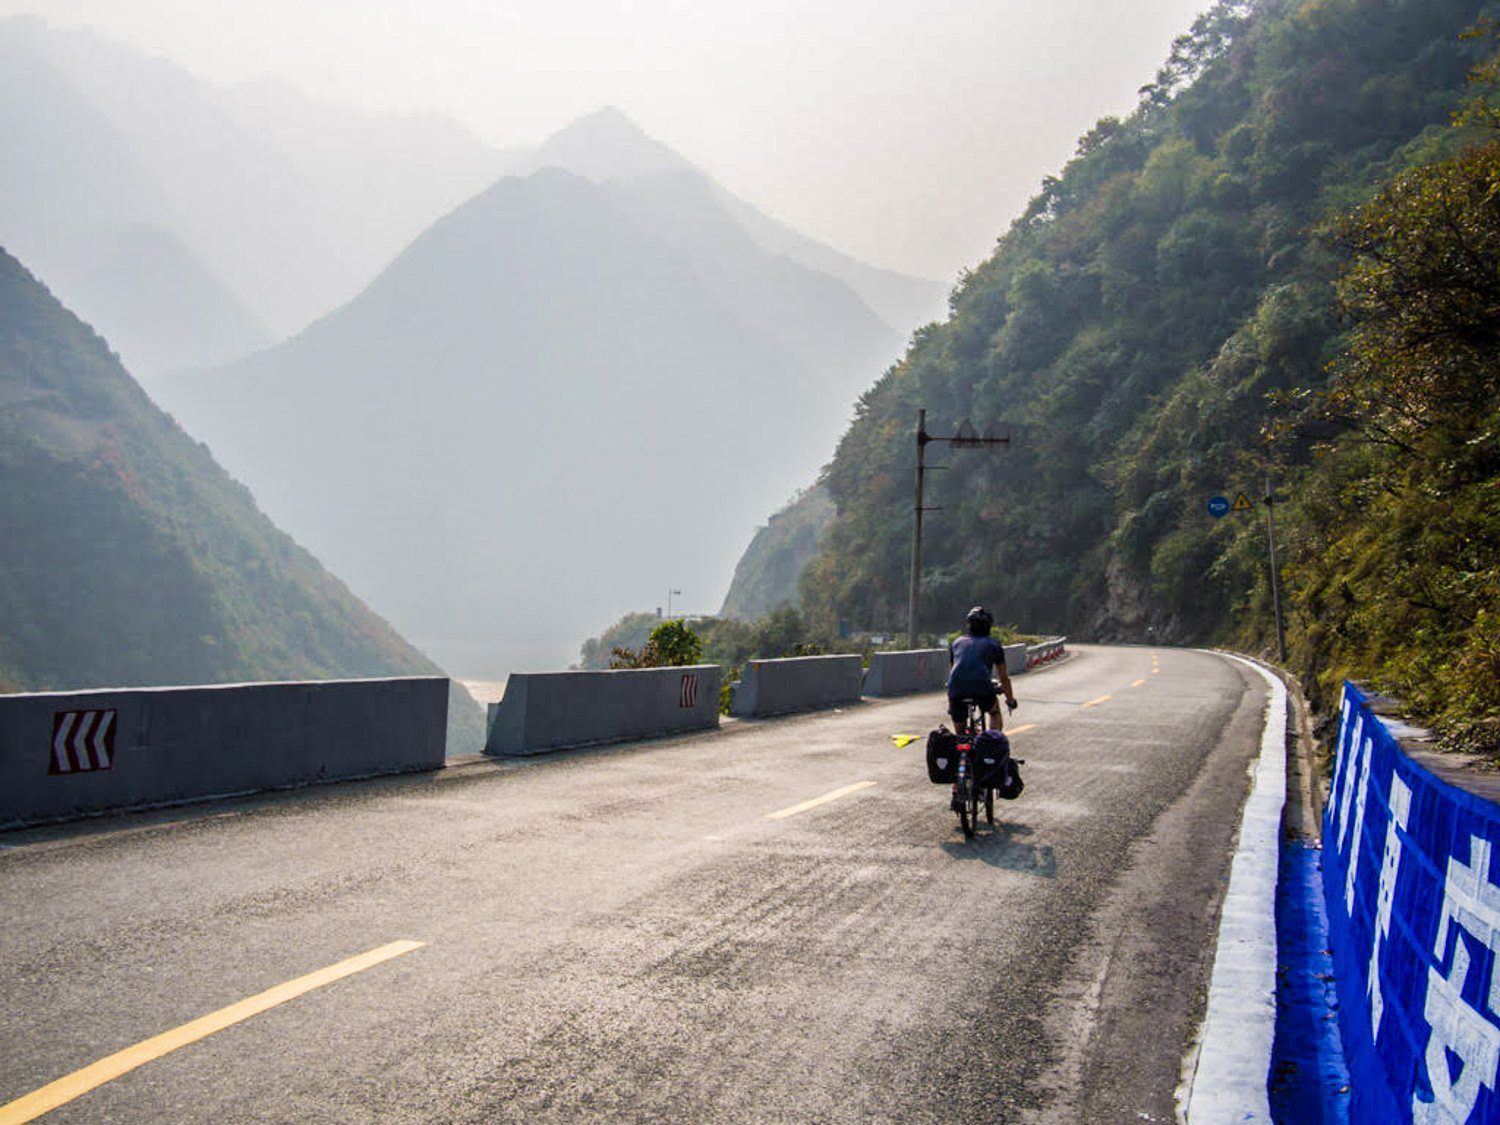 Stephen ascending a misty mountain pass by bike in China.